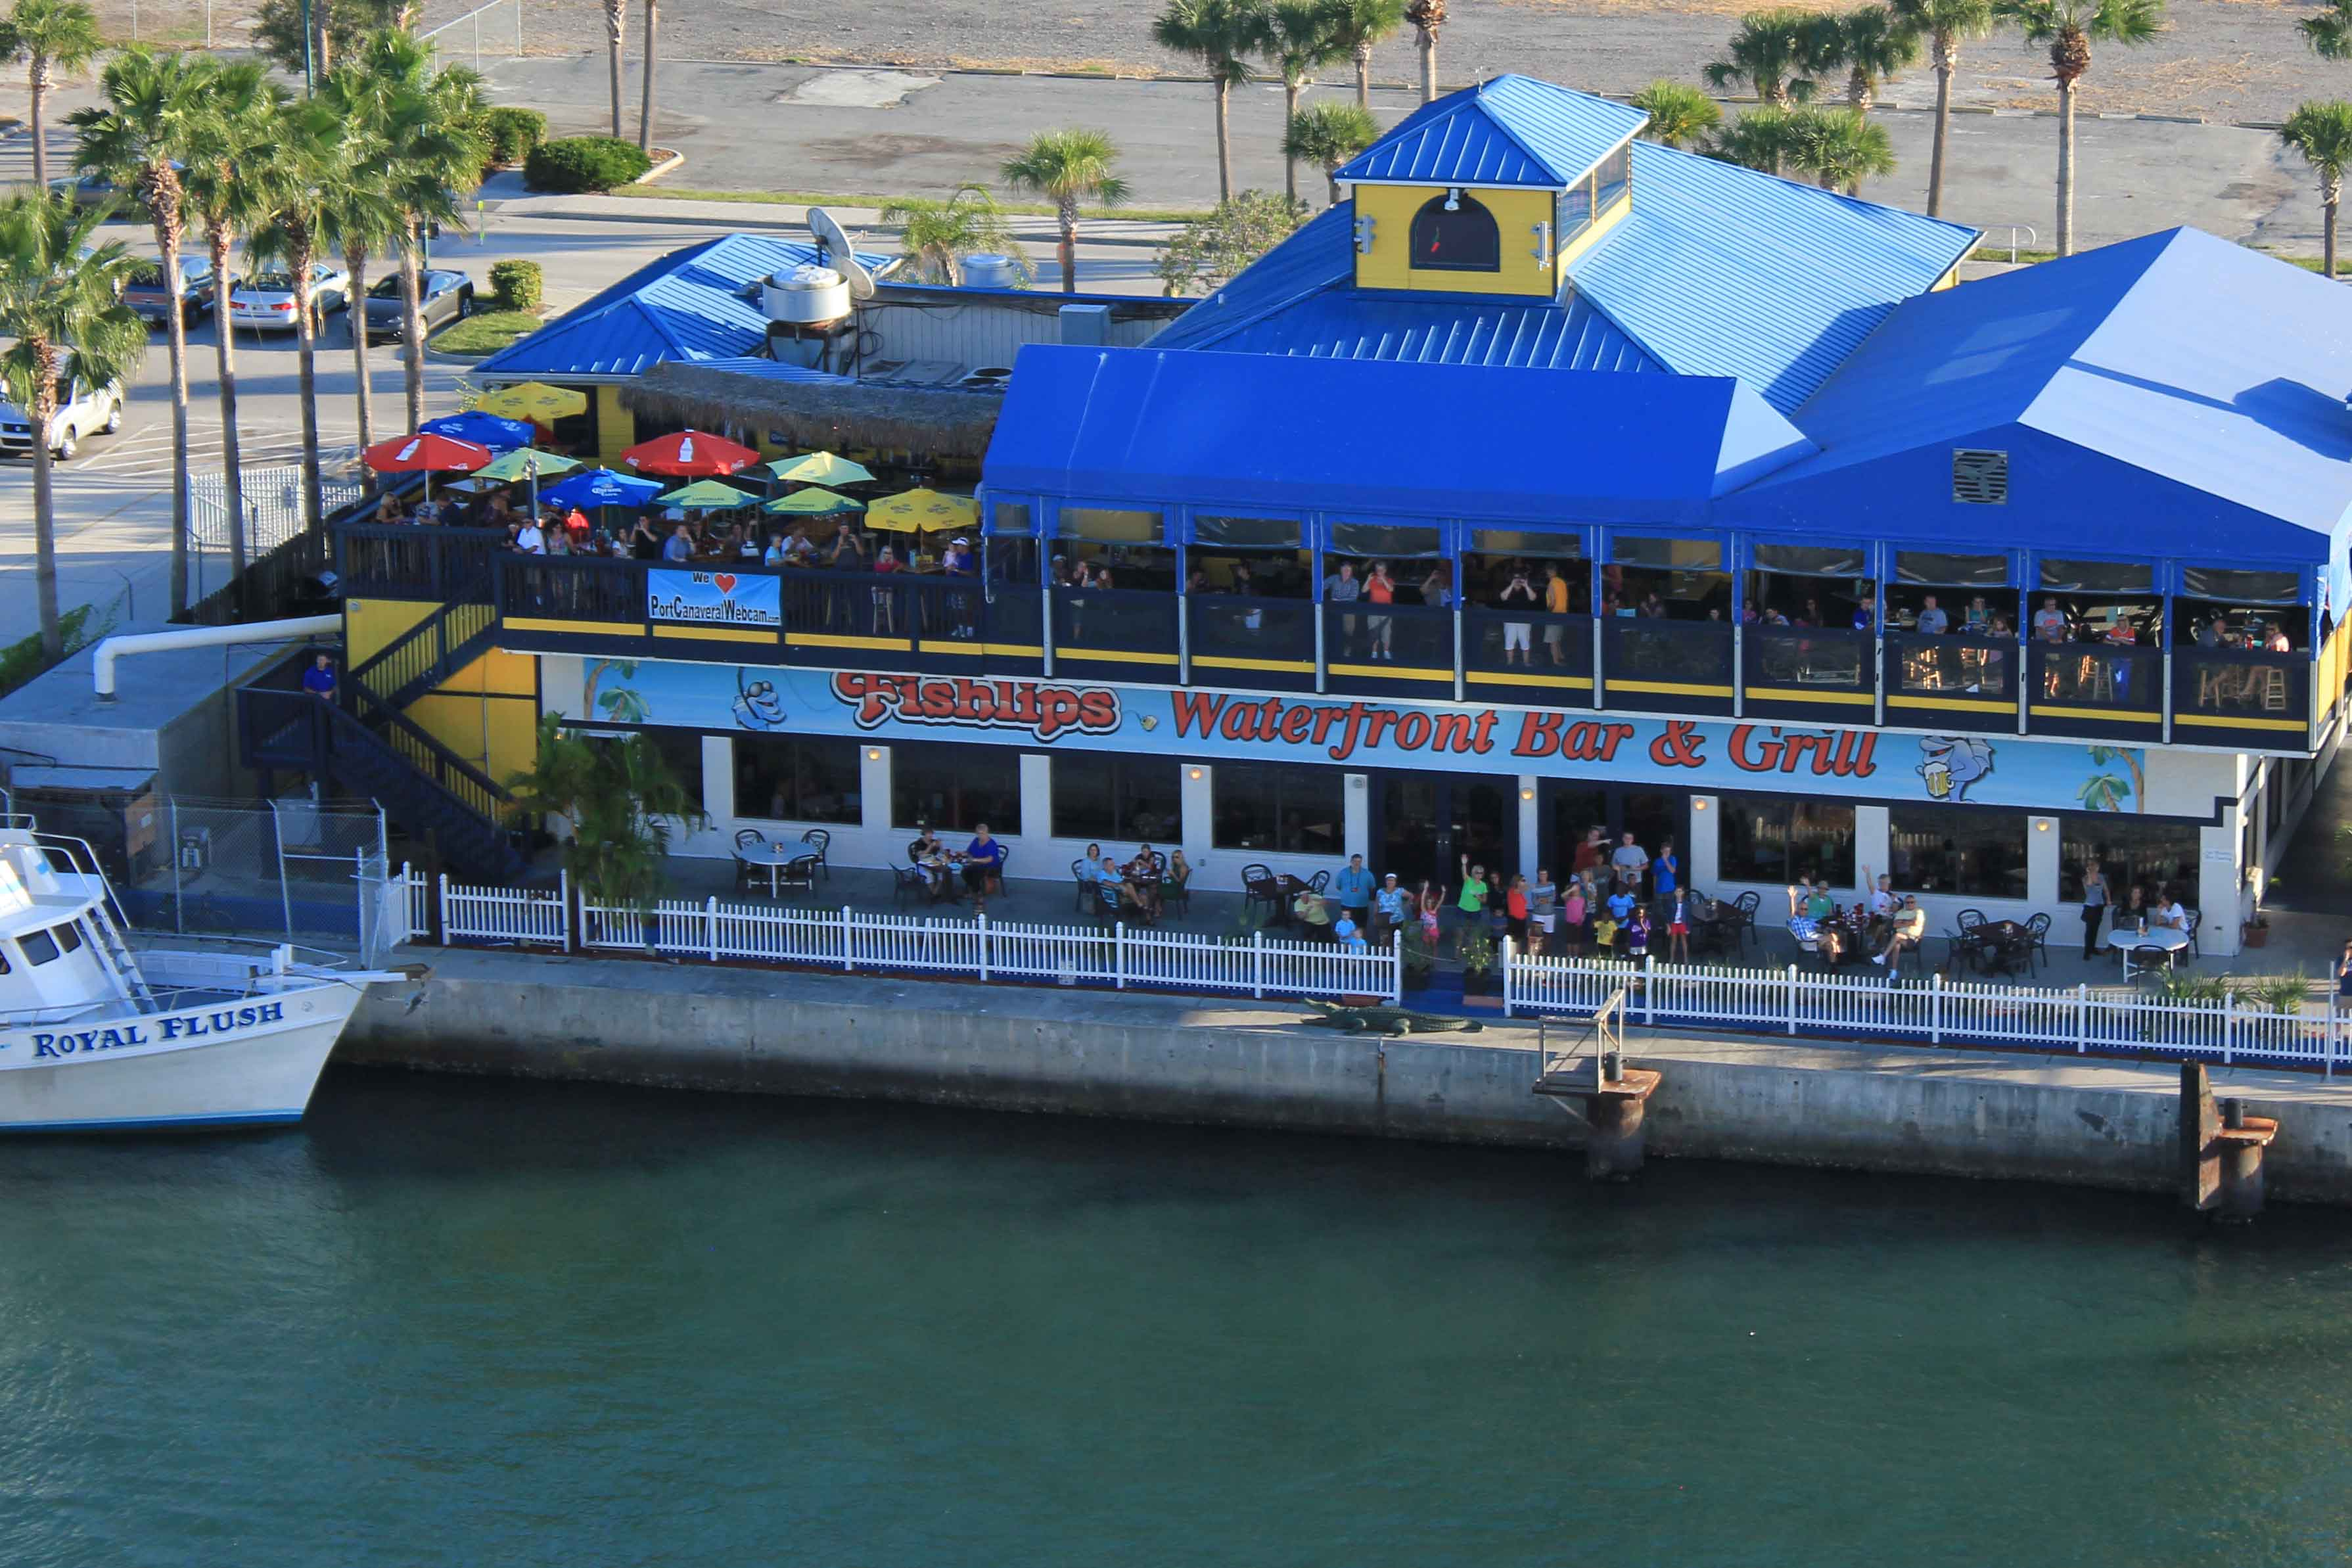 FishlipsWaterfrontBarAndGrill_portcanaveral